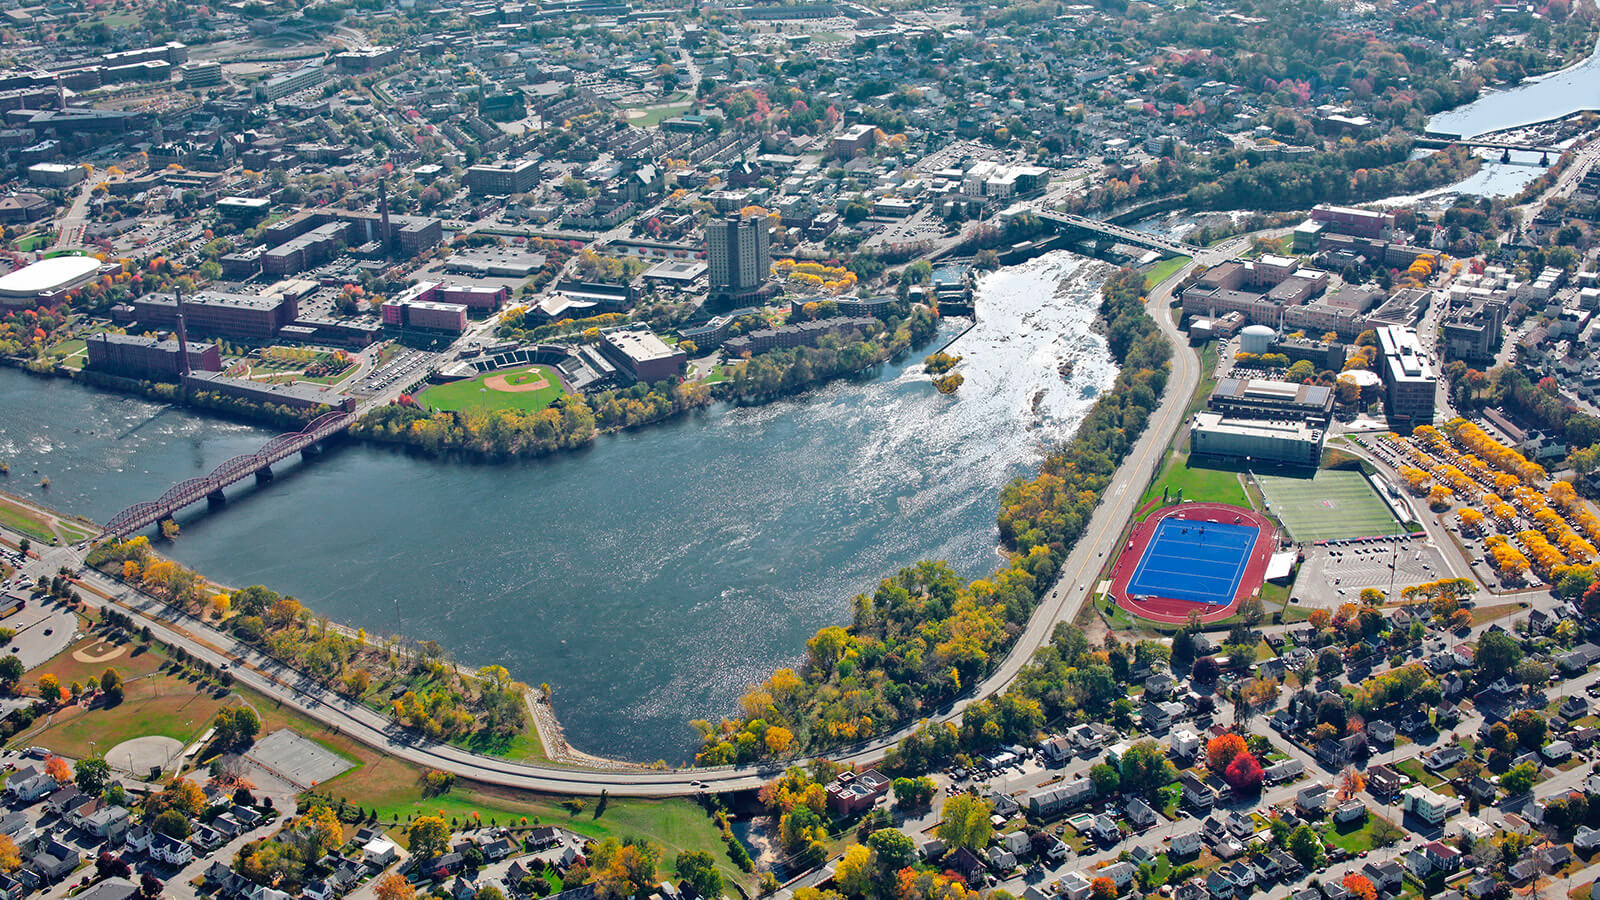 University of Massachusetts-Lowell